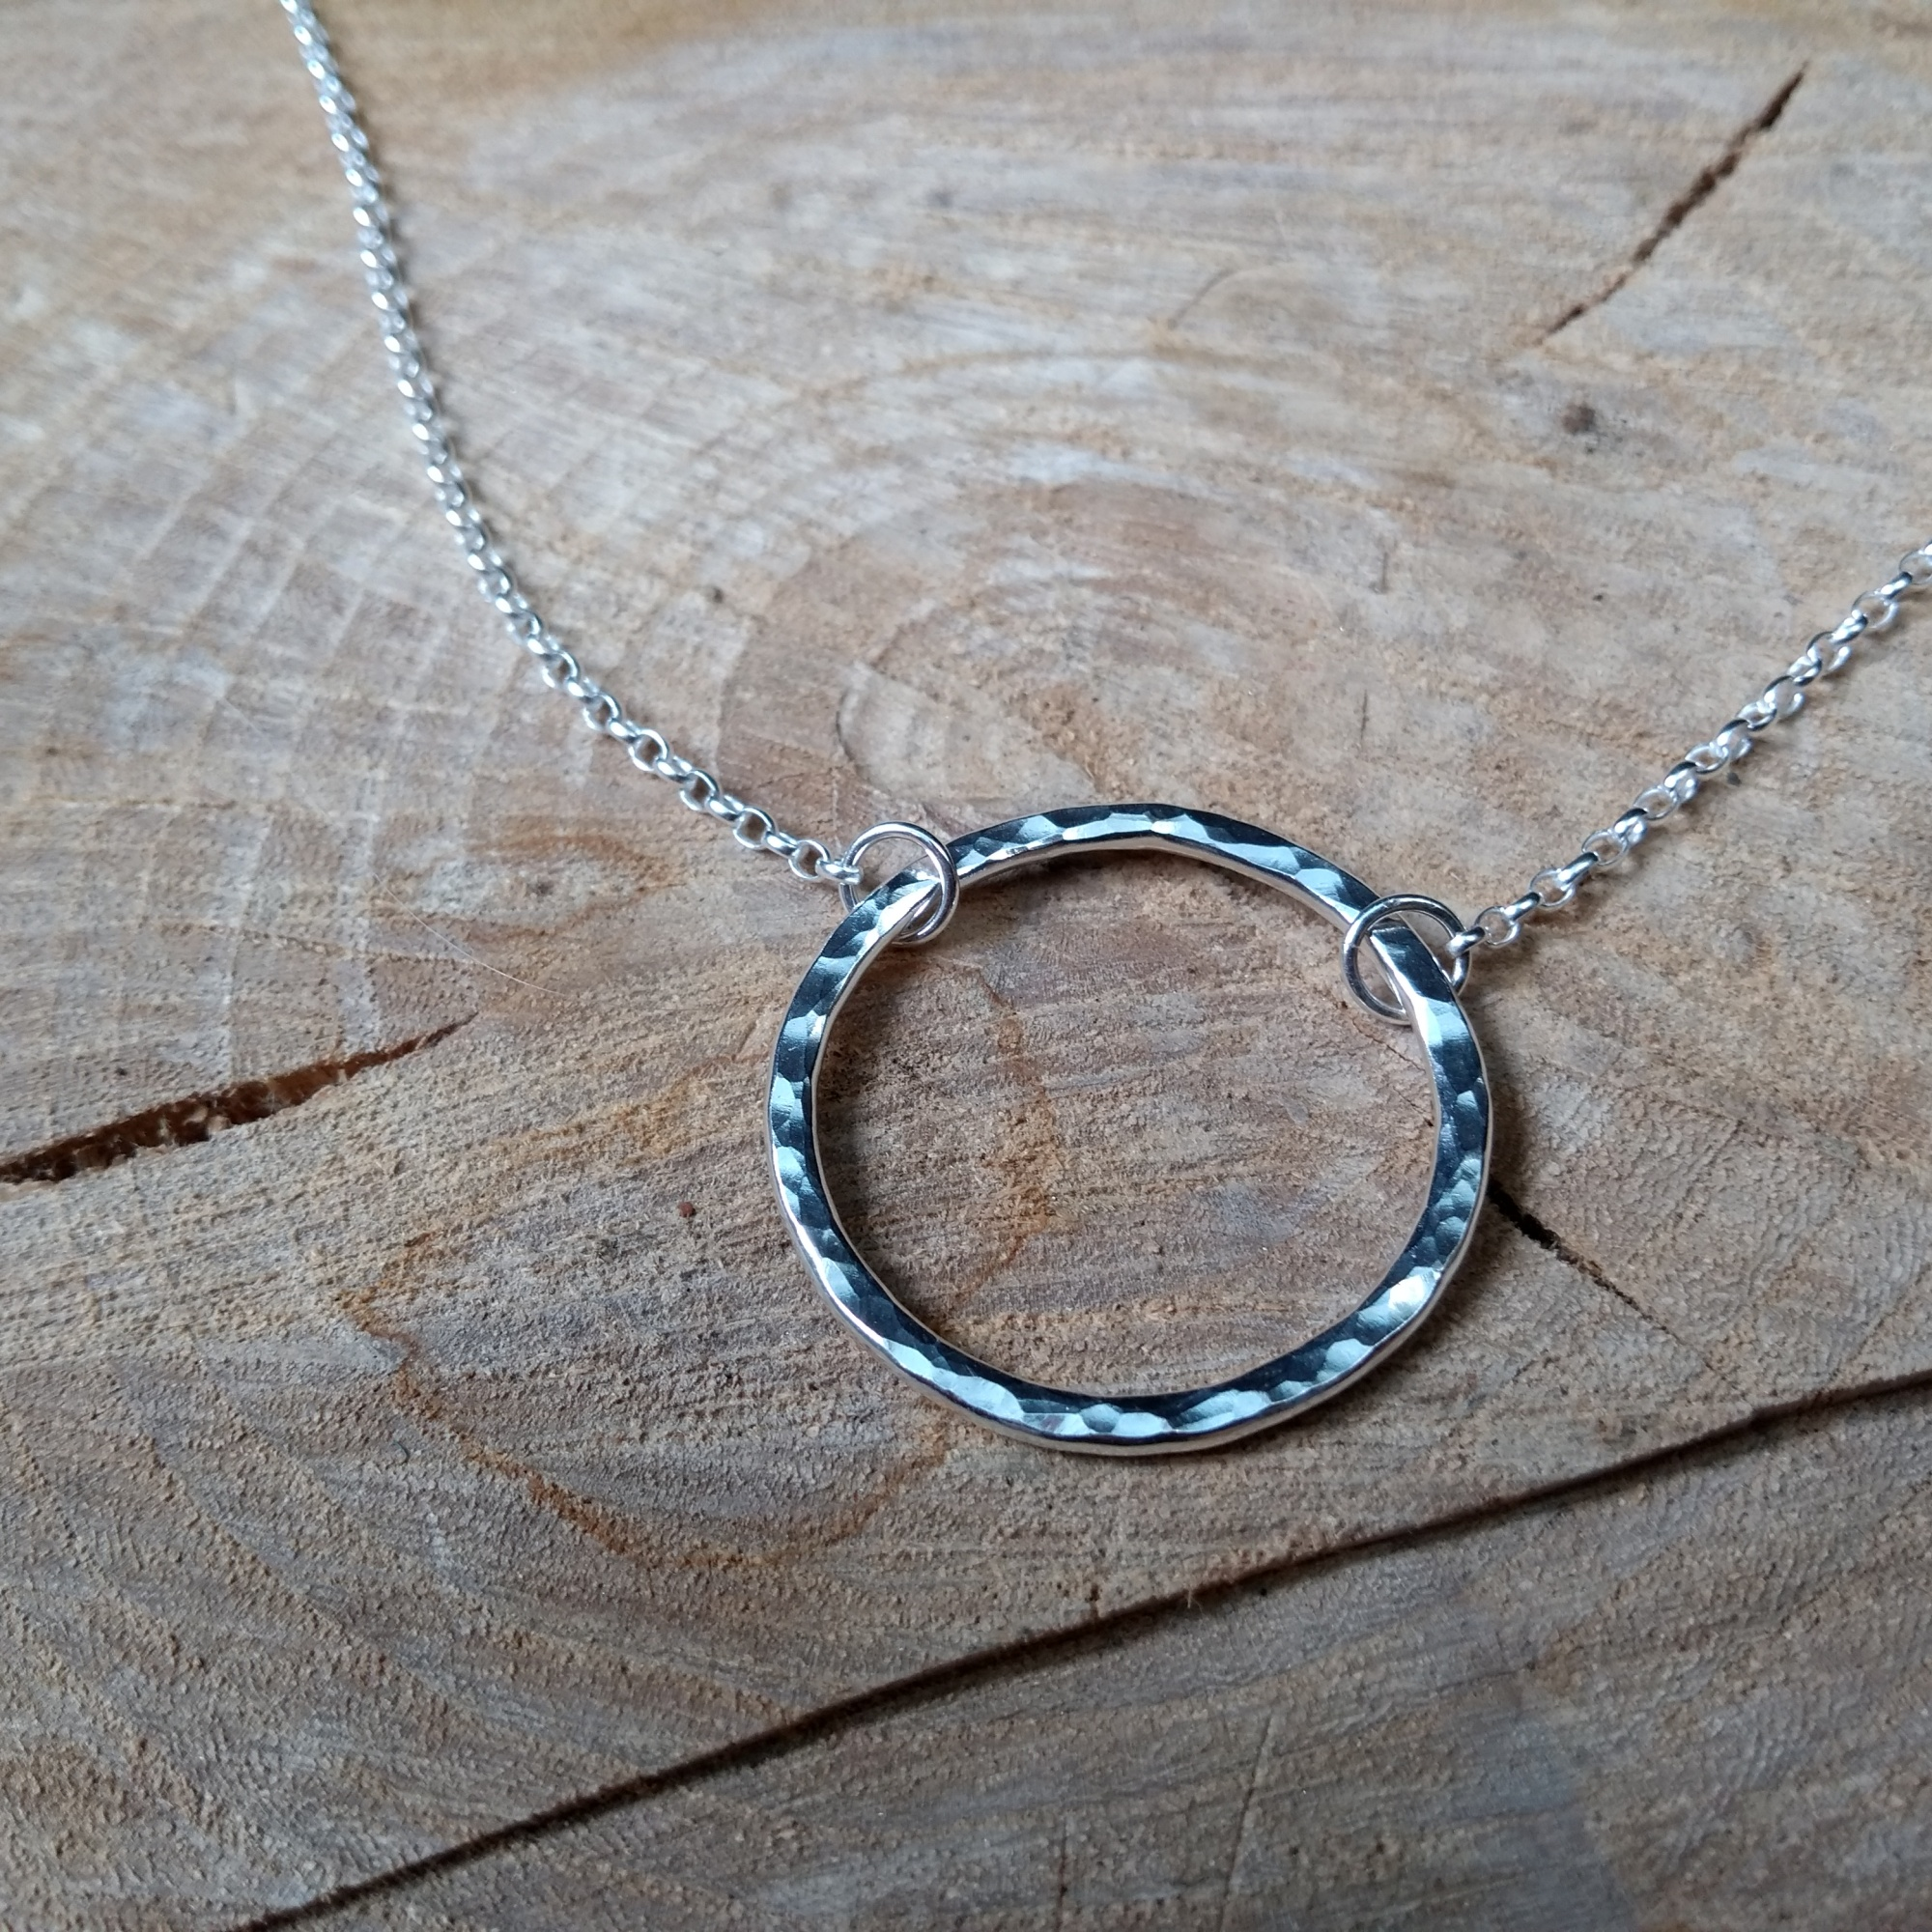 Silver hammered circle necklace